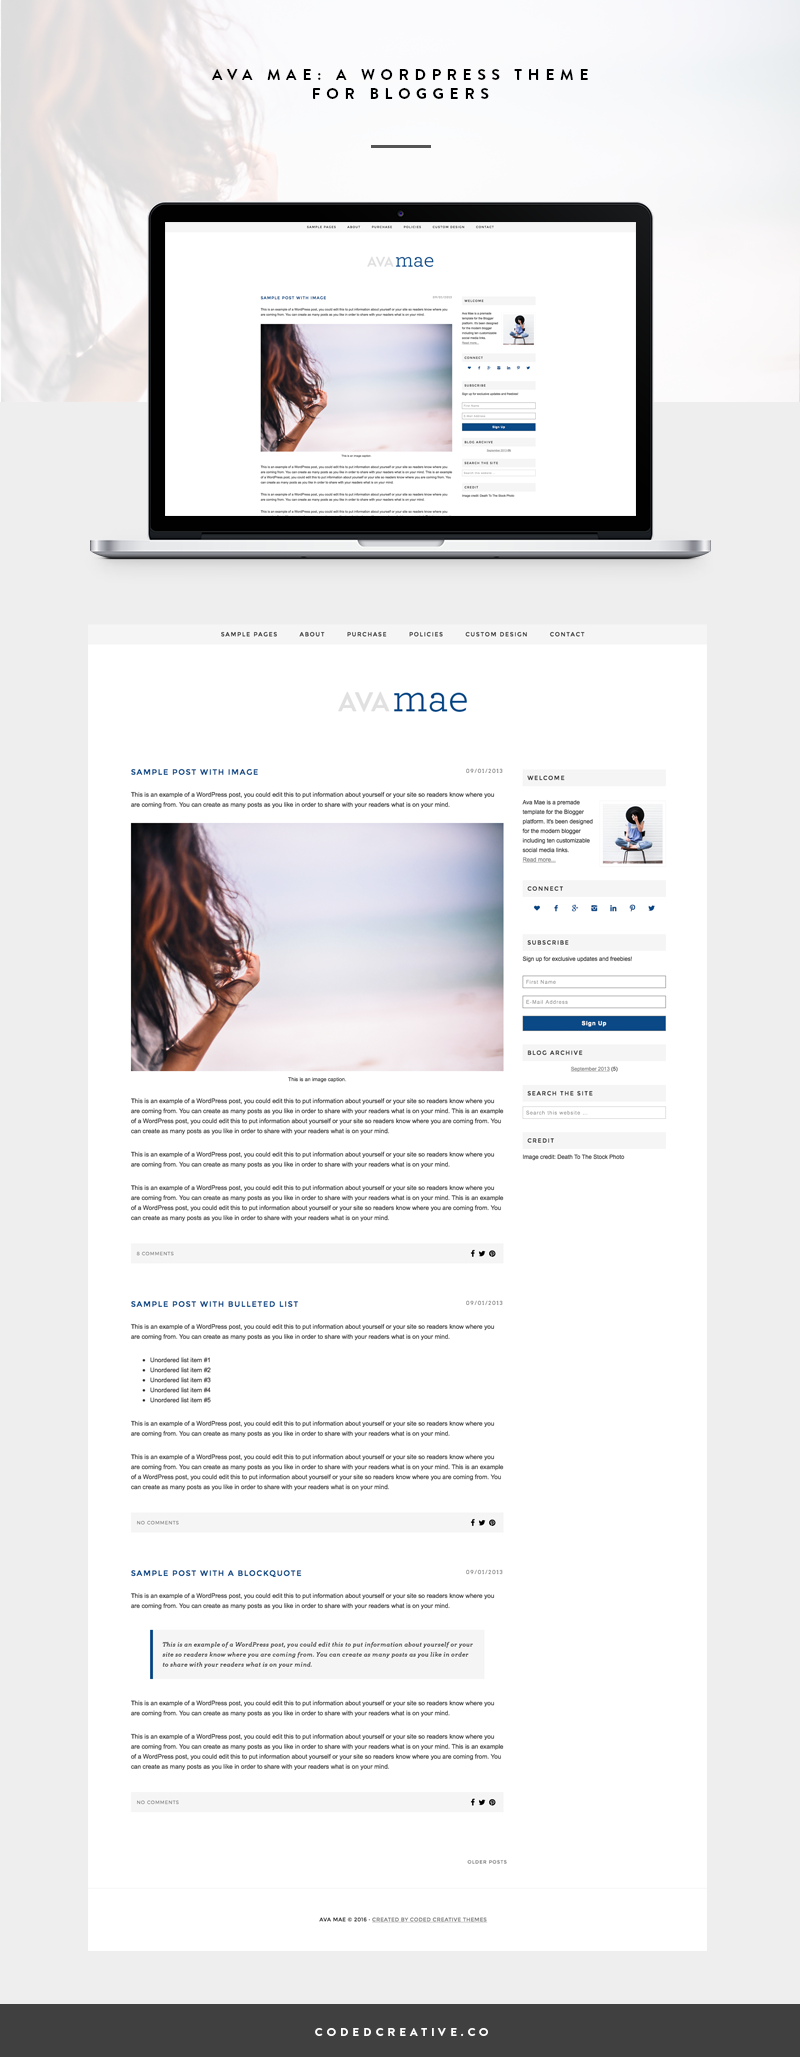 Ava Mae is a feminine and simple blog template created for the WordPress platform. Ava Mae is the perfect template for the new blogger looking to get an upgraded look on a budget.